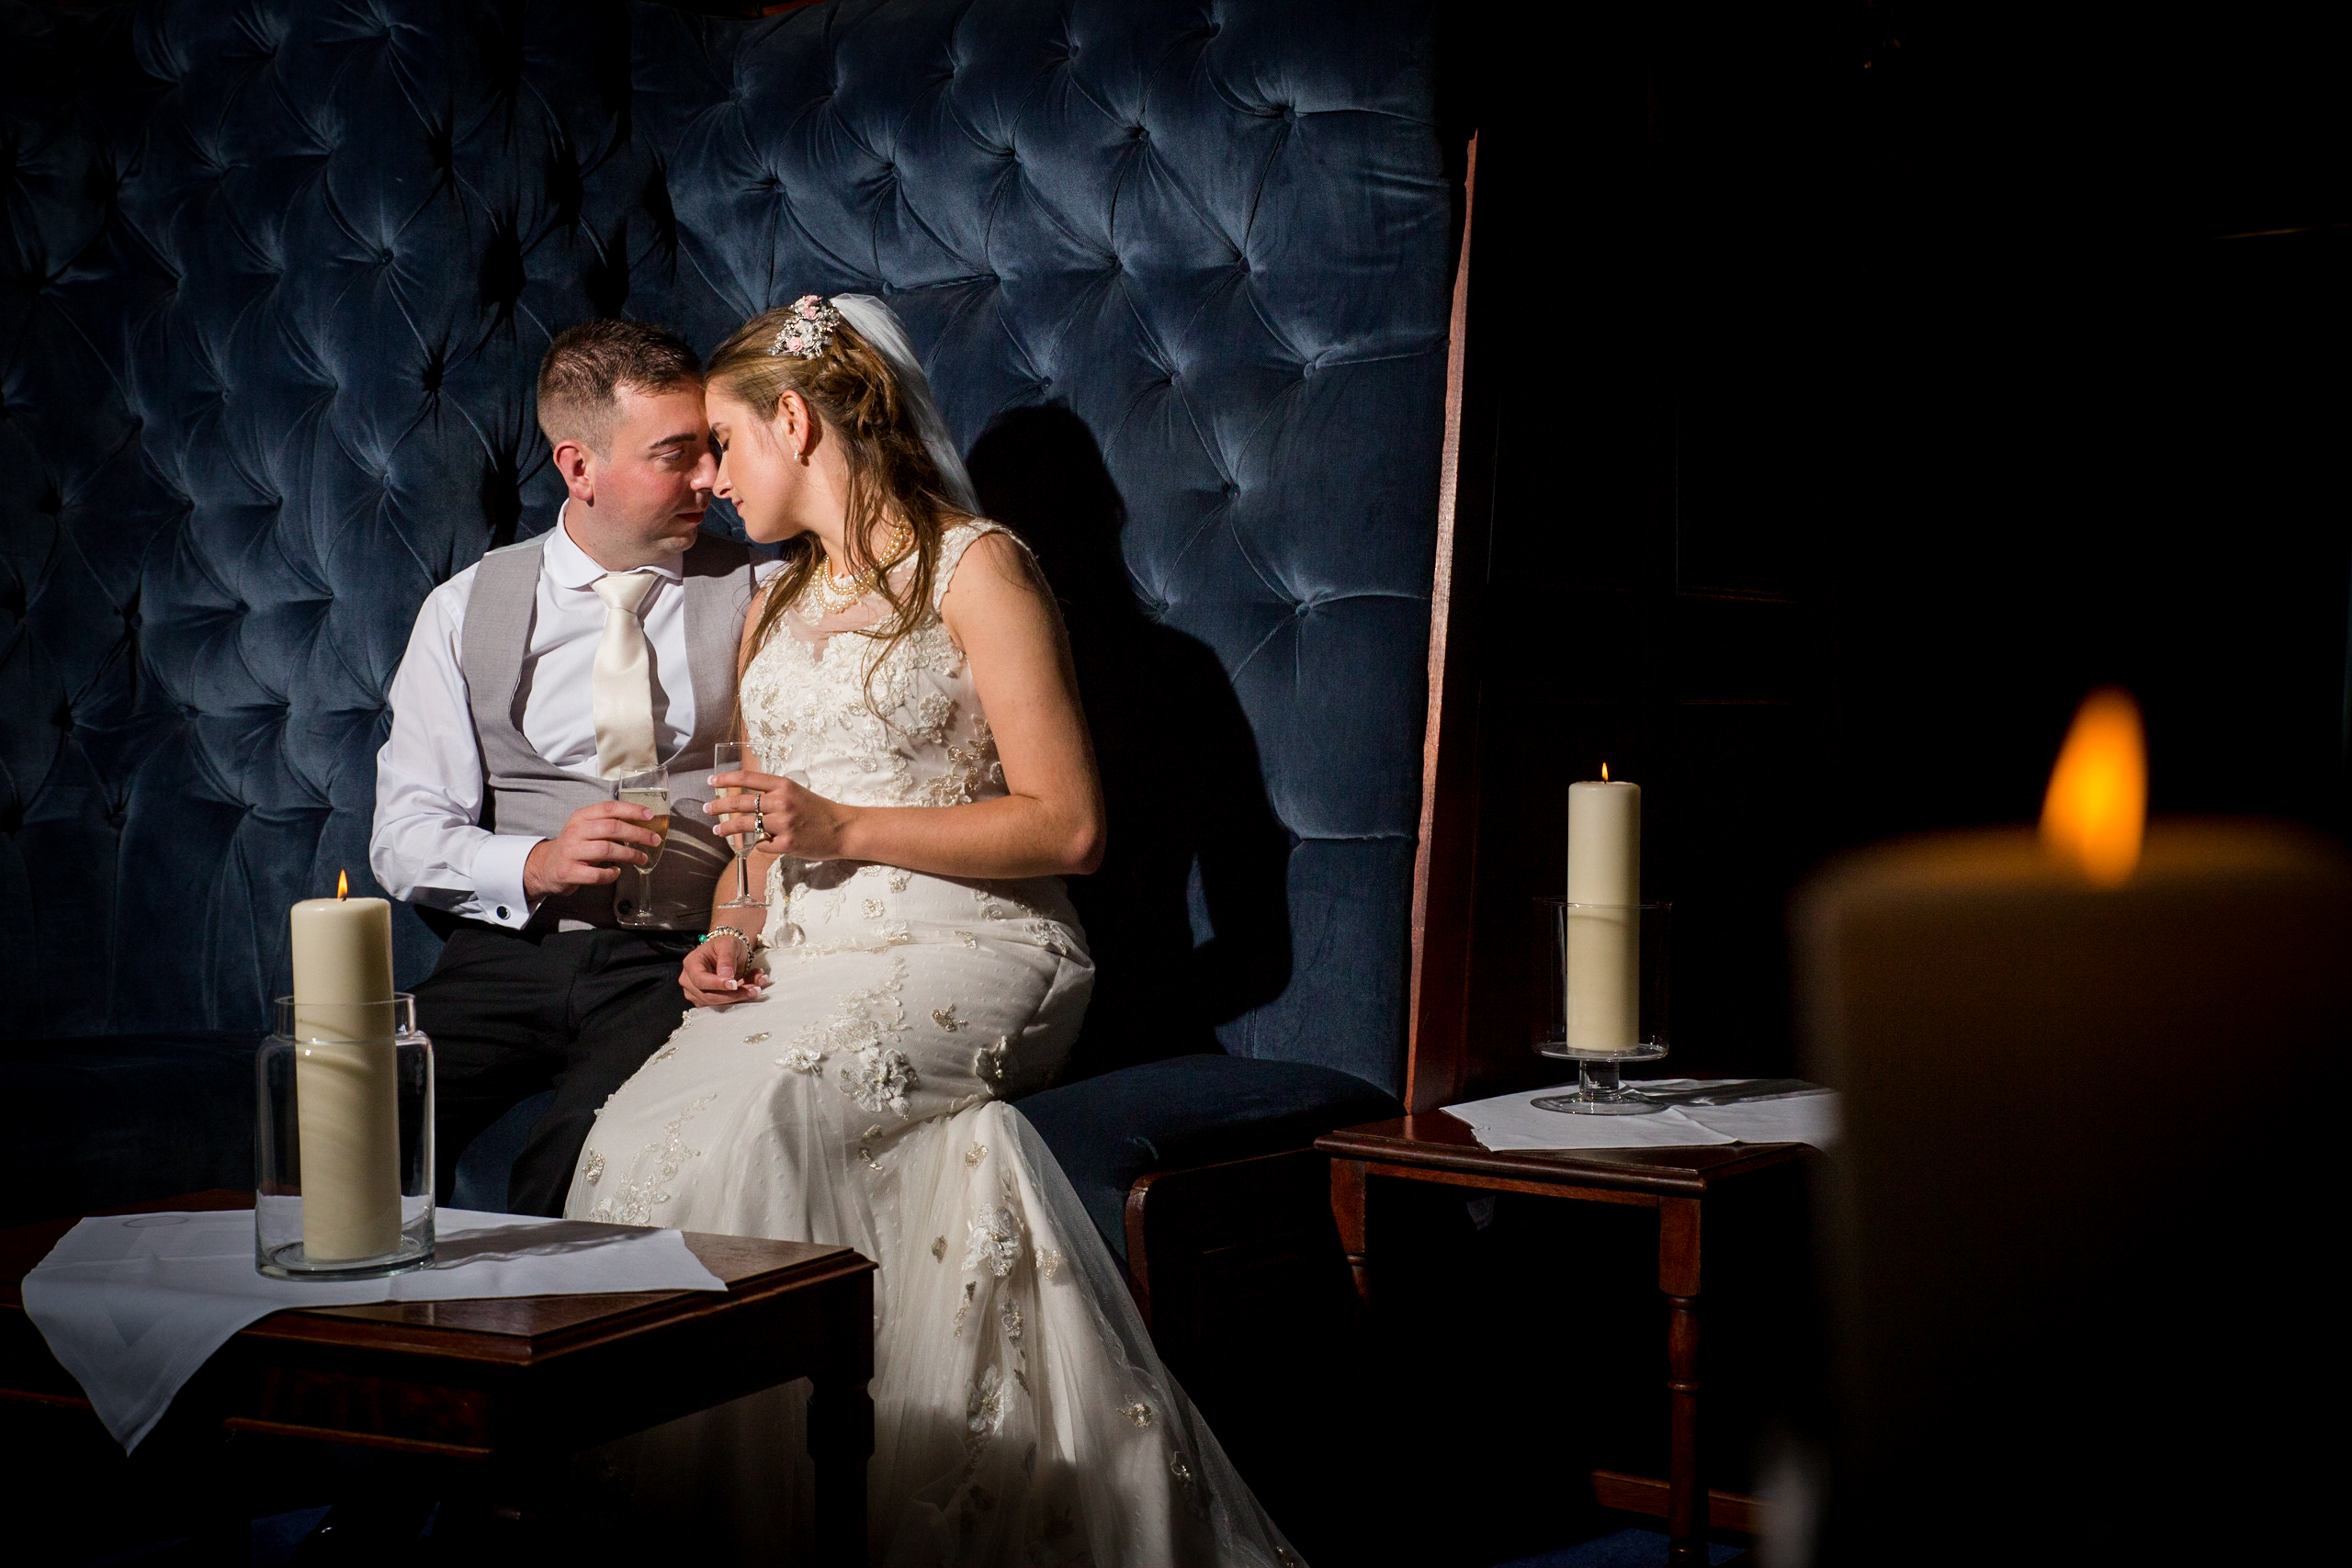 Atlantic hotel wedding by Tom Robinson Photography Cornwall wedding photographer